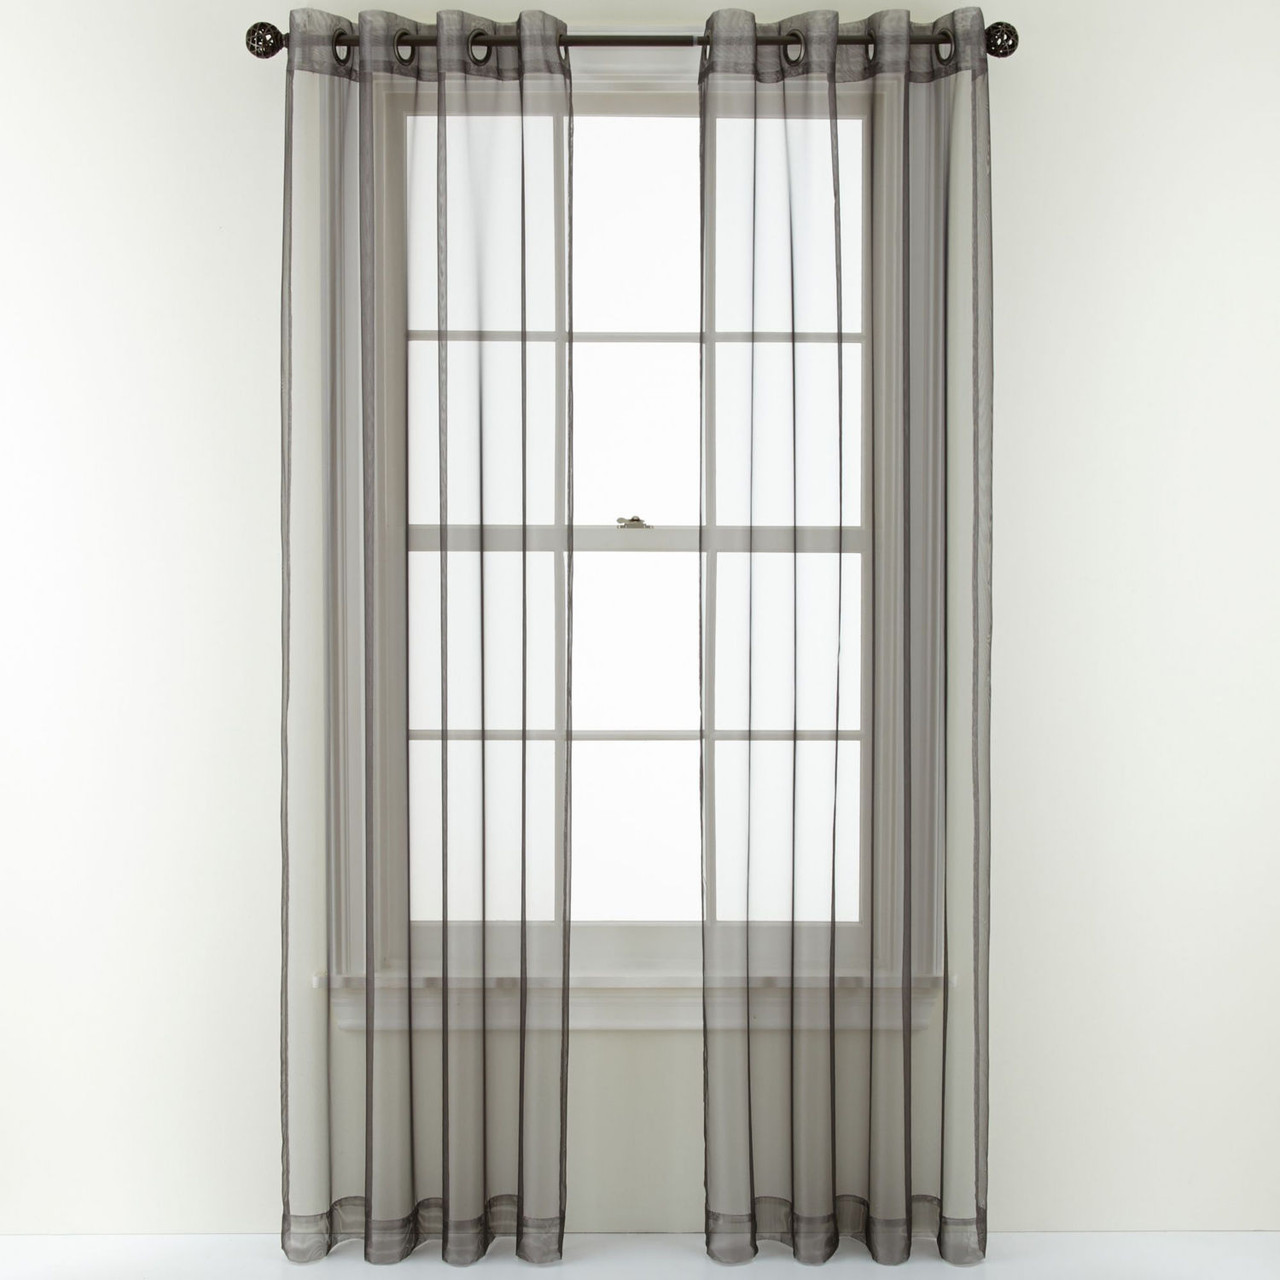 Open And Shut Sheer Curtain Panel Window Blind Outlet